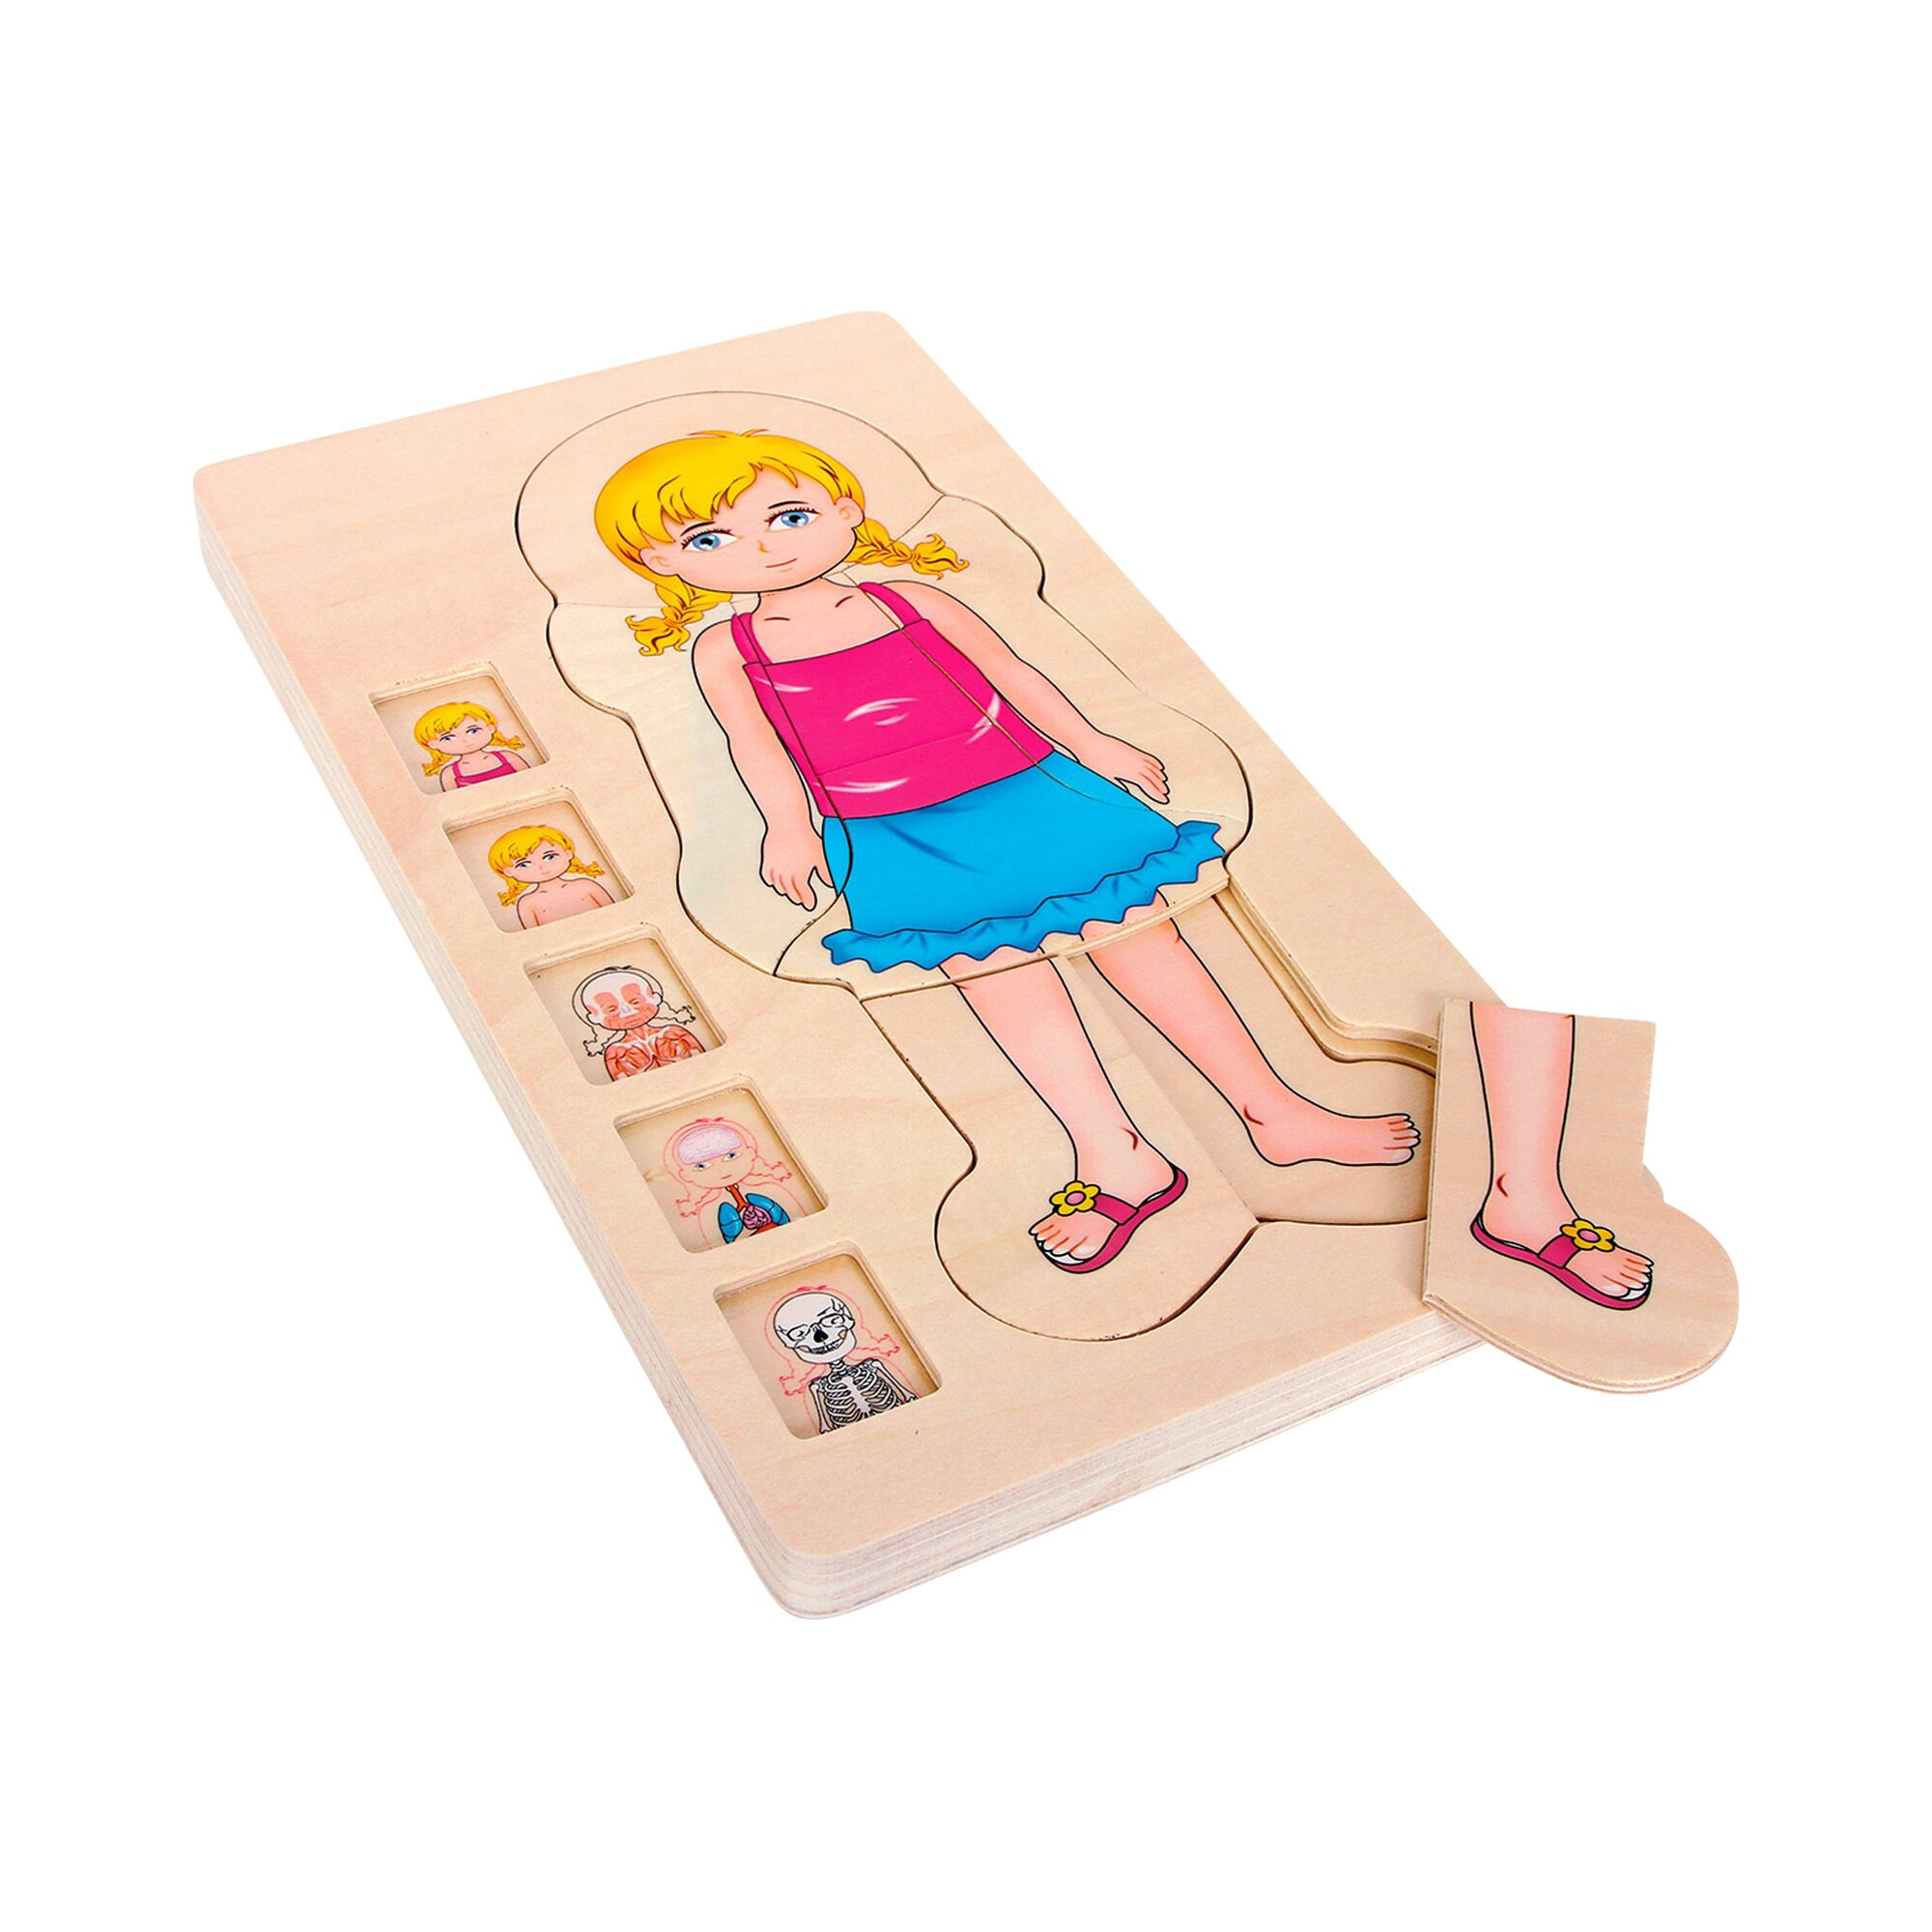 small-foot-puzzle-anatomie-madchen